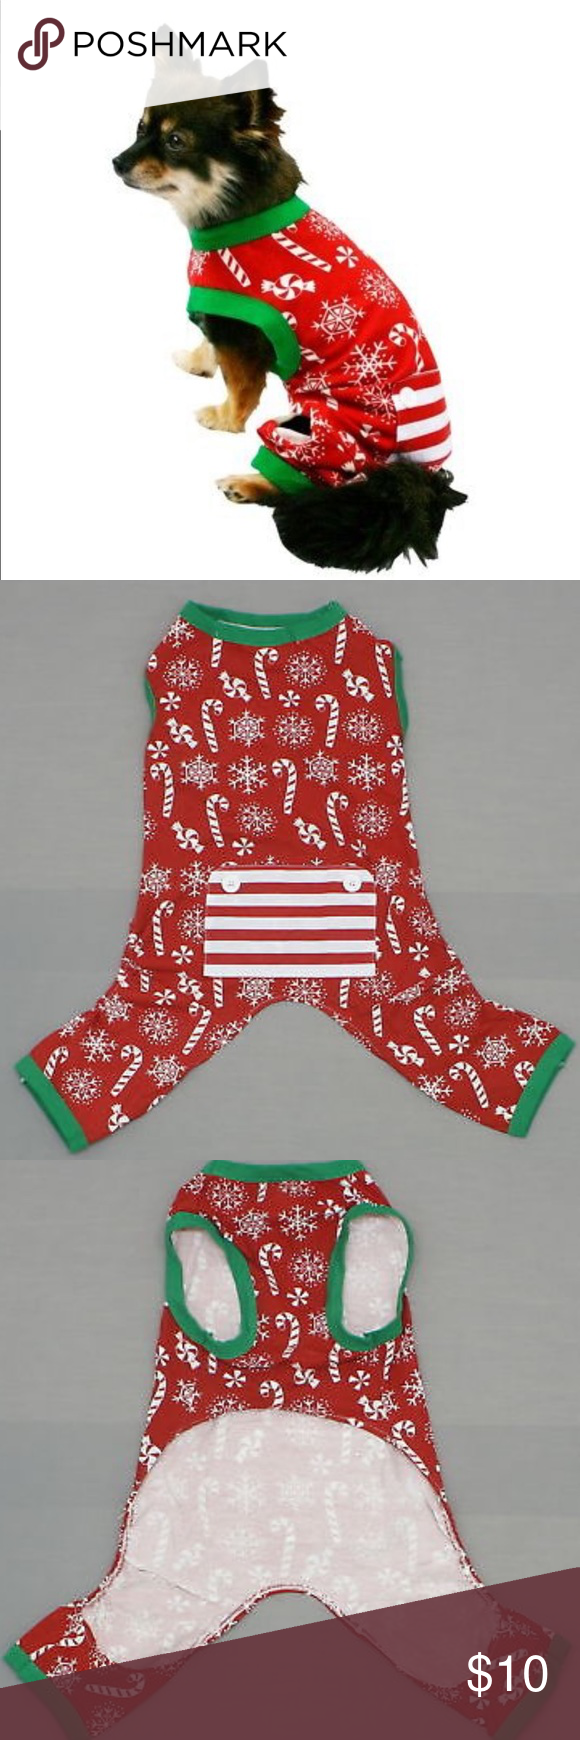 Pet Pajamas Christmas Candy Cane Dog Pajamas XL cute